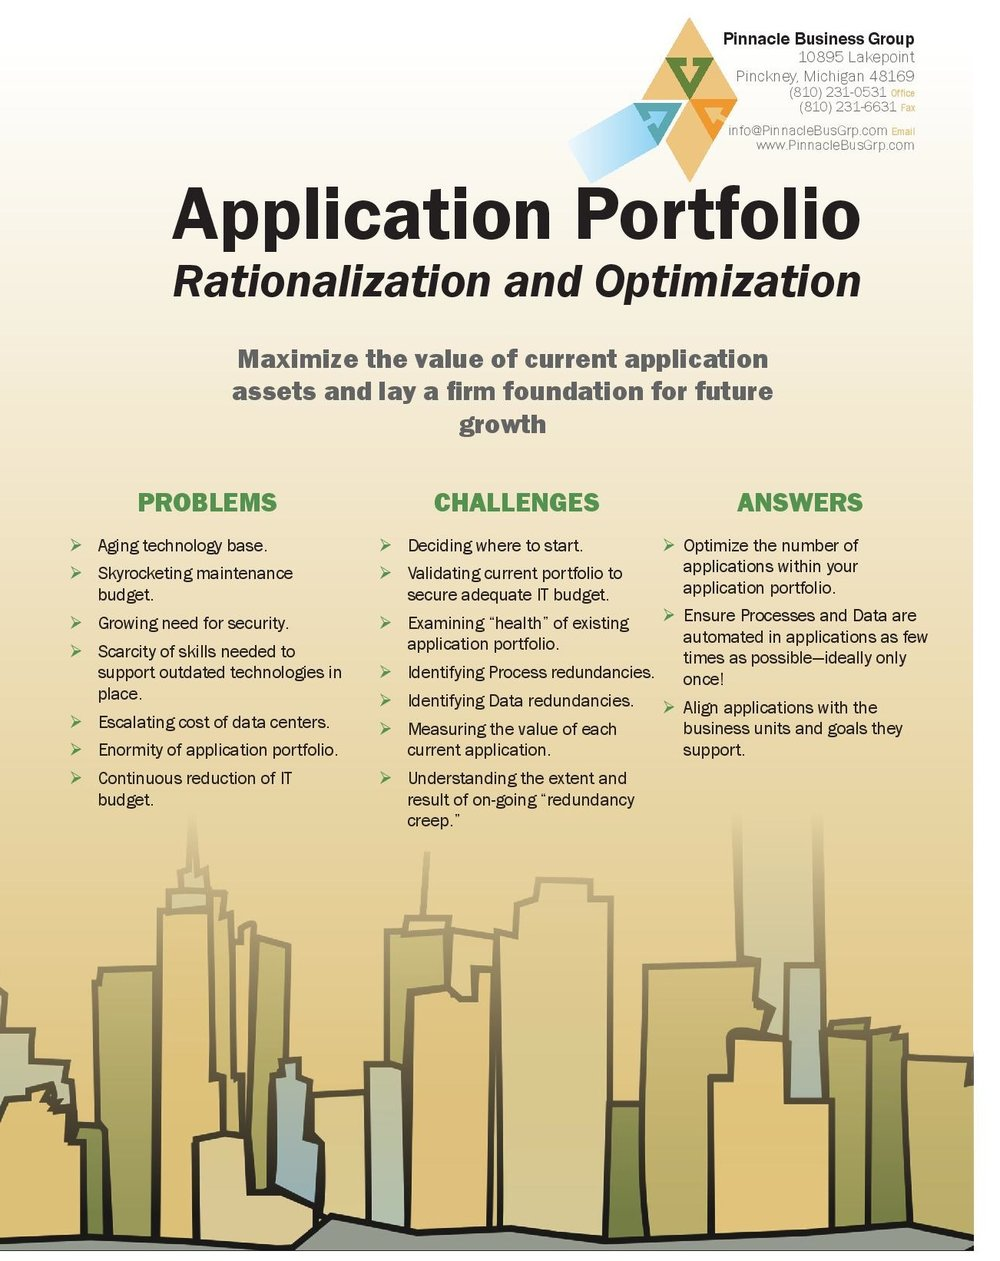 View our Application Portfolio Rationalization & Optimization Brochure